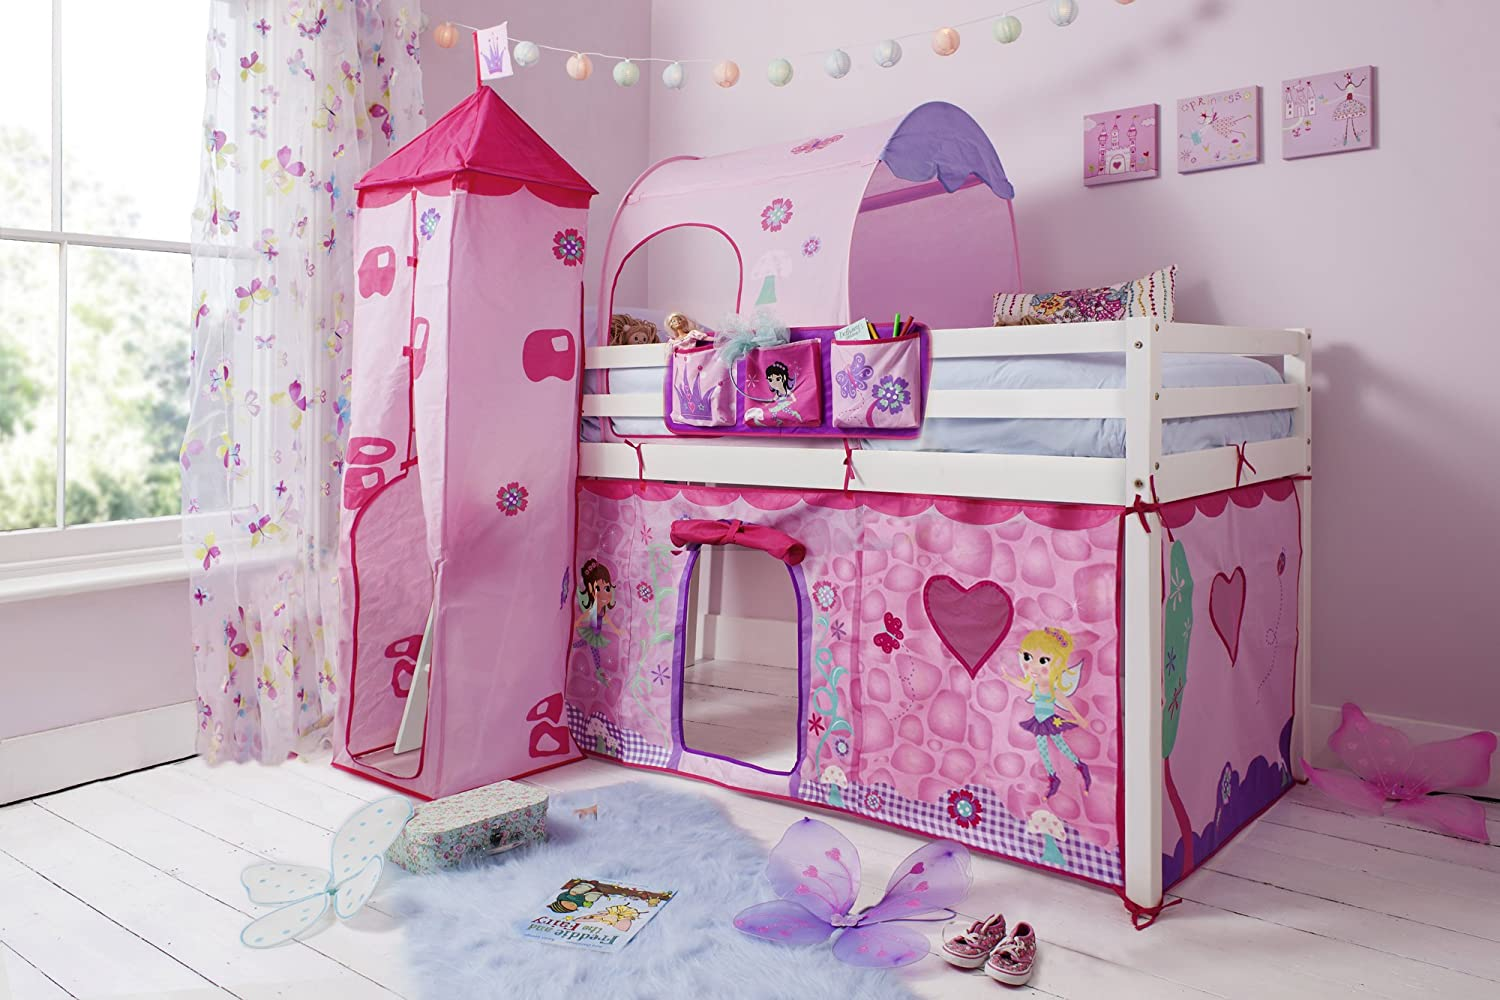 Cabin Bed Midsleeper with TentTower Tunnel u0026 Bed Tidy in Fairies (Solid White) Amazon.co.uk Kitchen u0026 Home & Cabin Bed Midsleeper with TentTower Tunnel u0026 Bed Tidy in Fairies ...